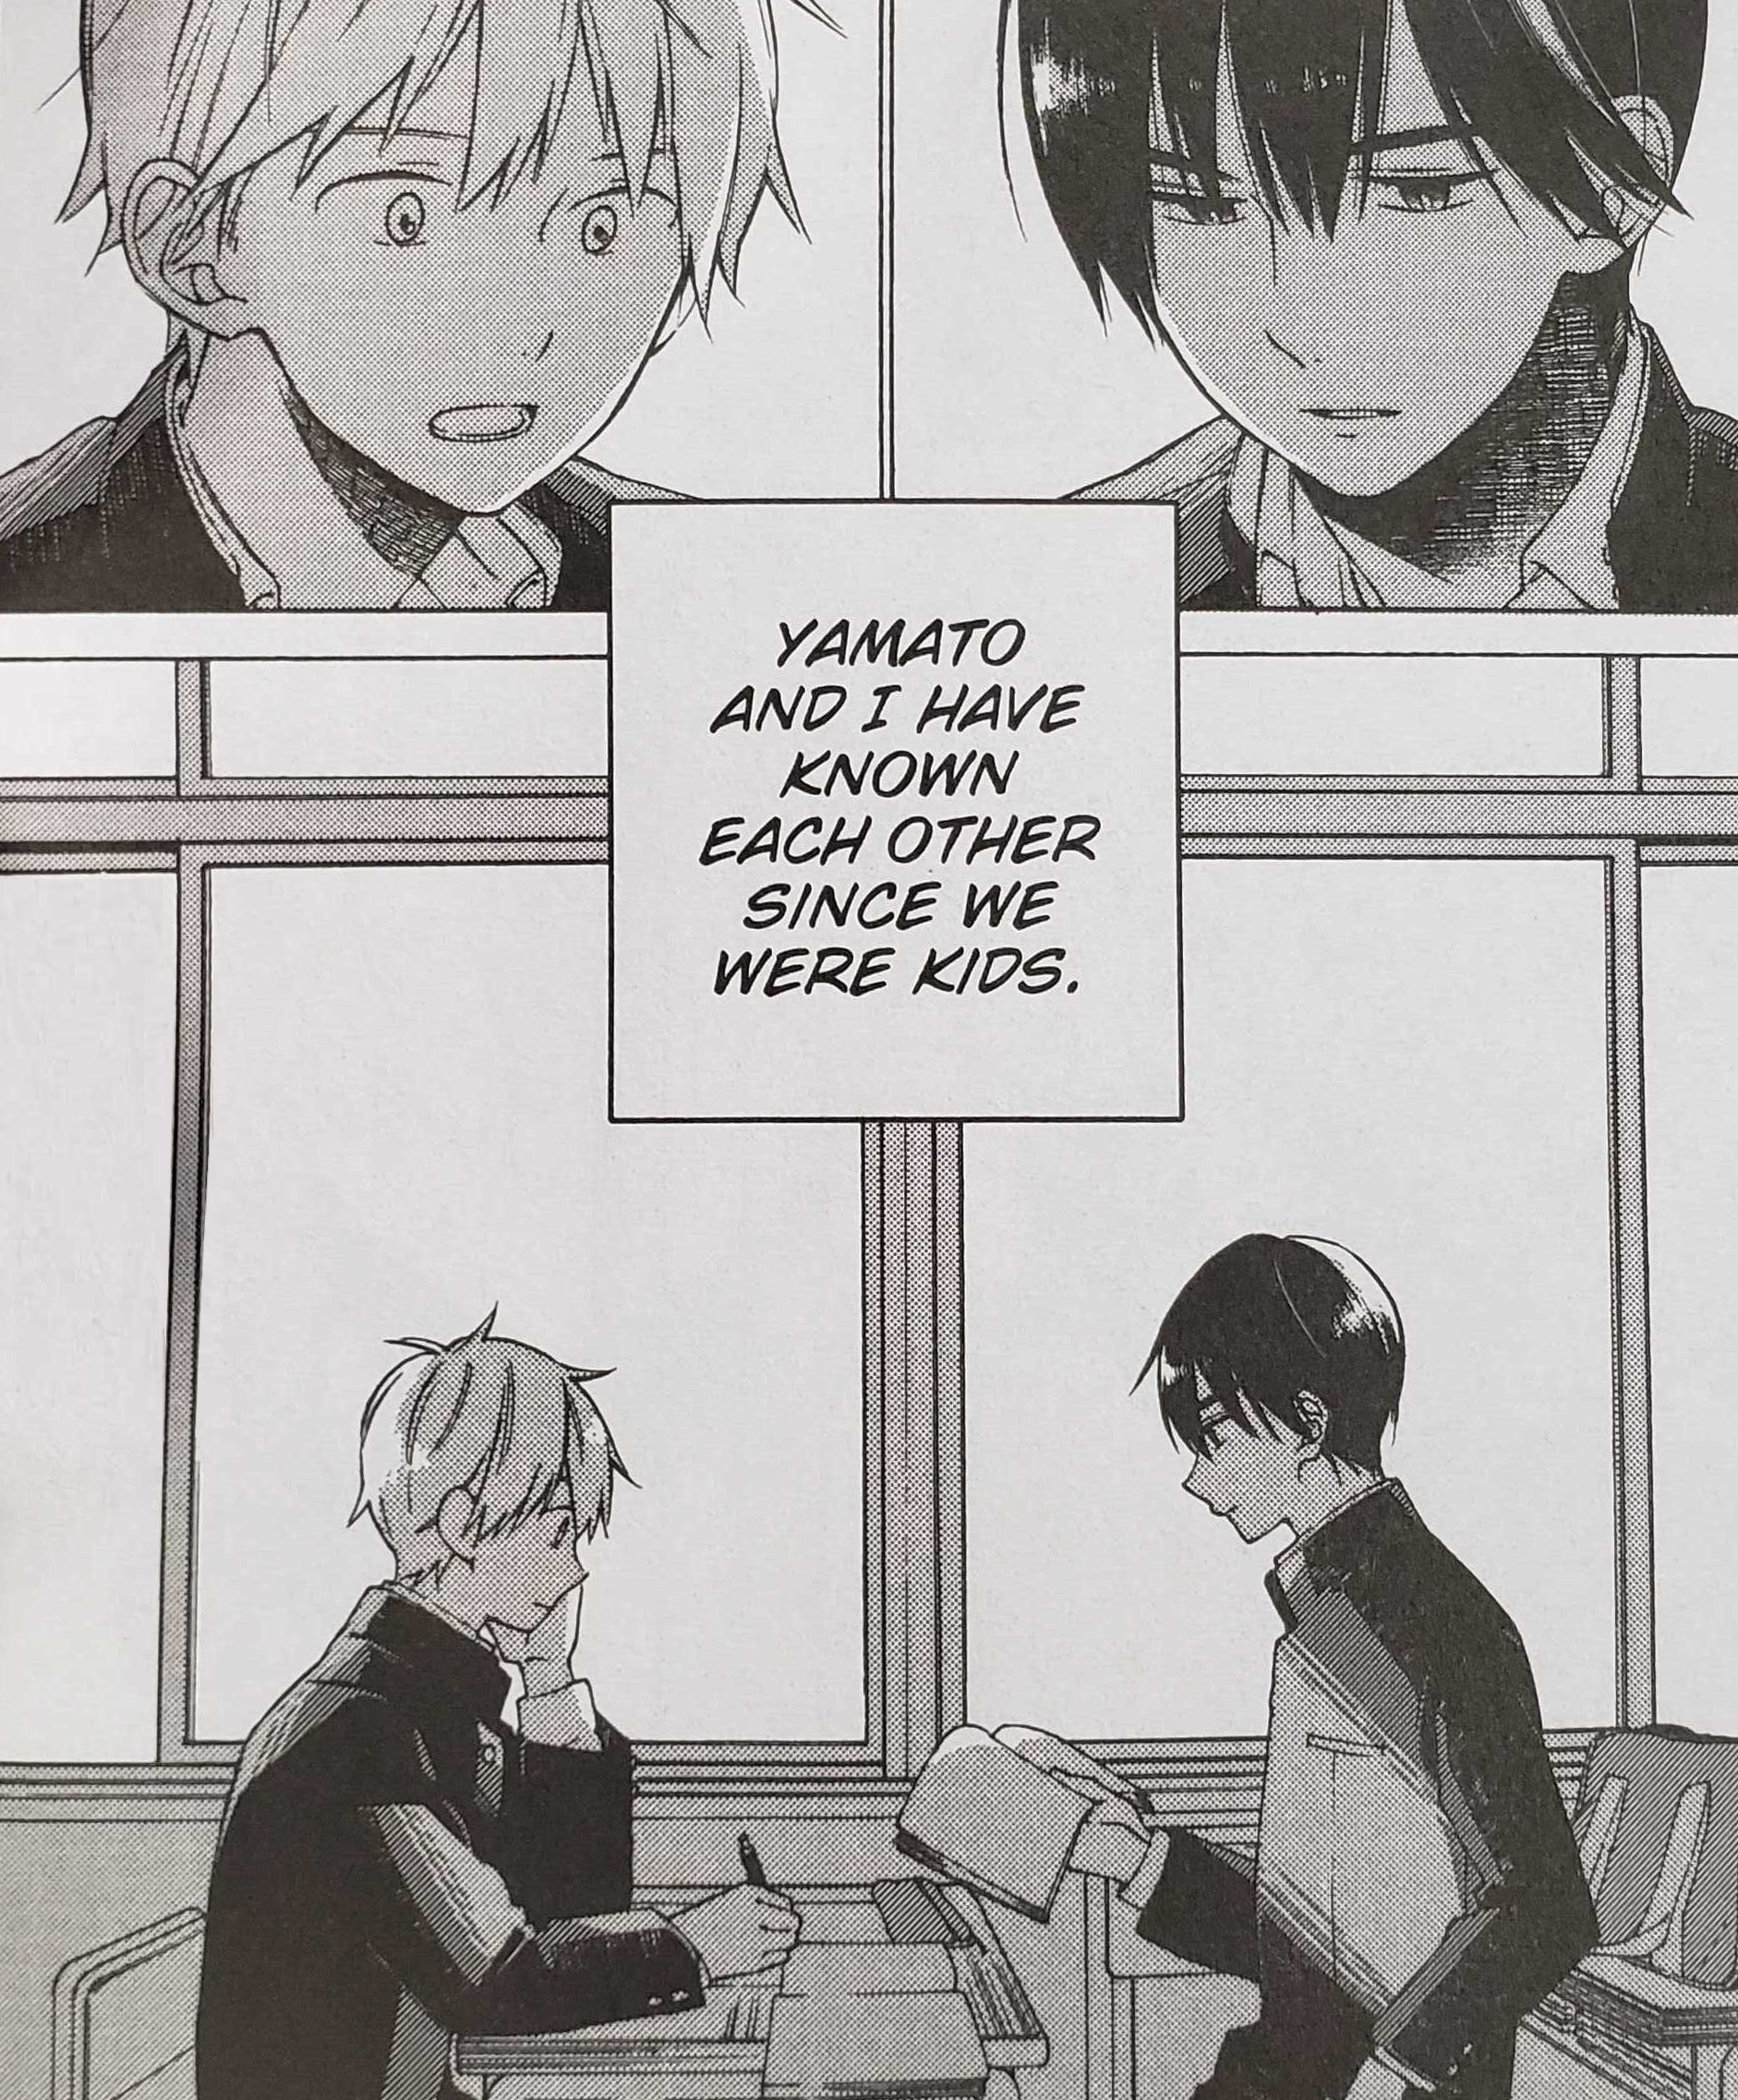 Kakeru and Yamato after school (I Cannot Reach You Volume 1, pg. 16).